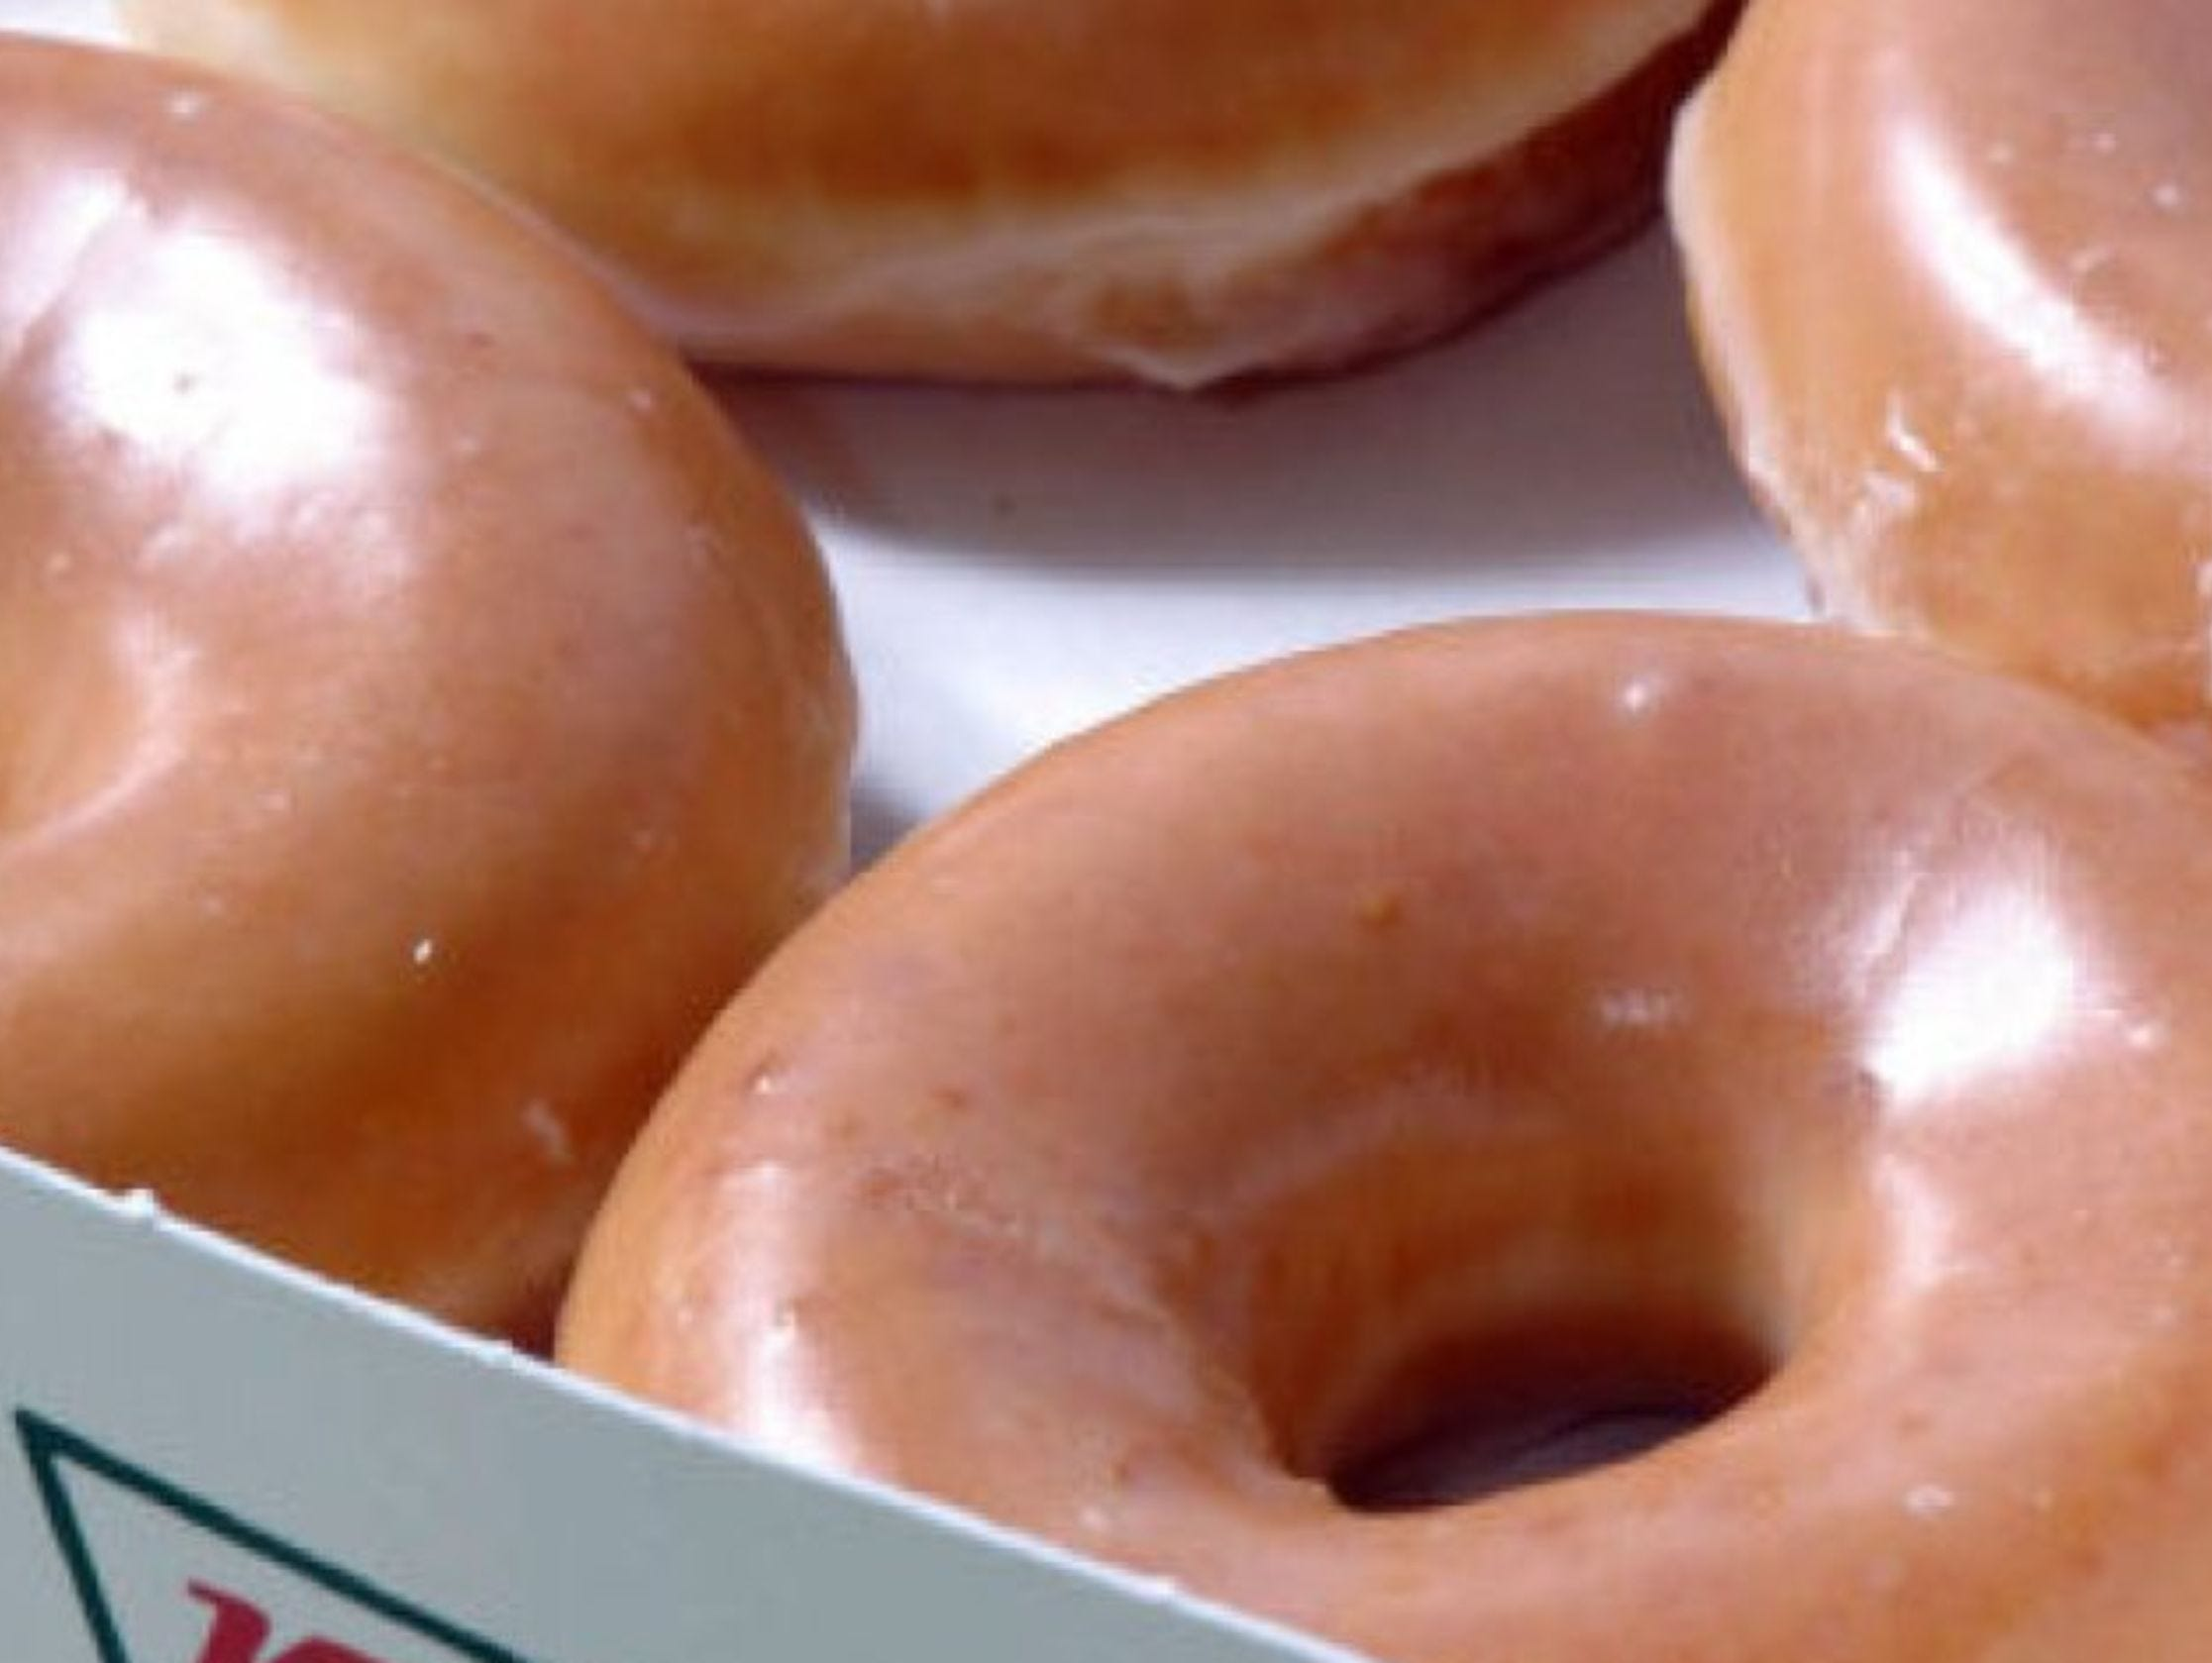 The HOT light is on! Claim your Insider deal for Krispy Kreme doughnuts today.